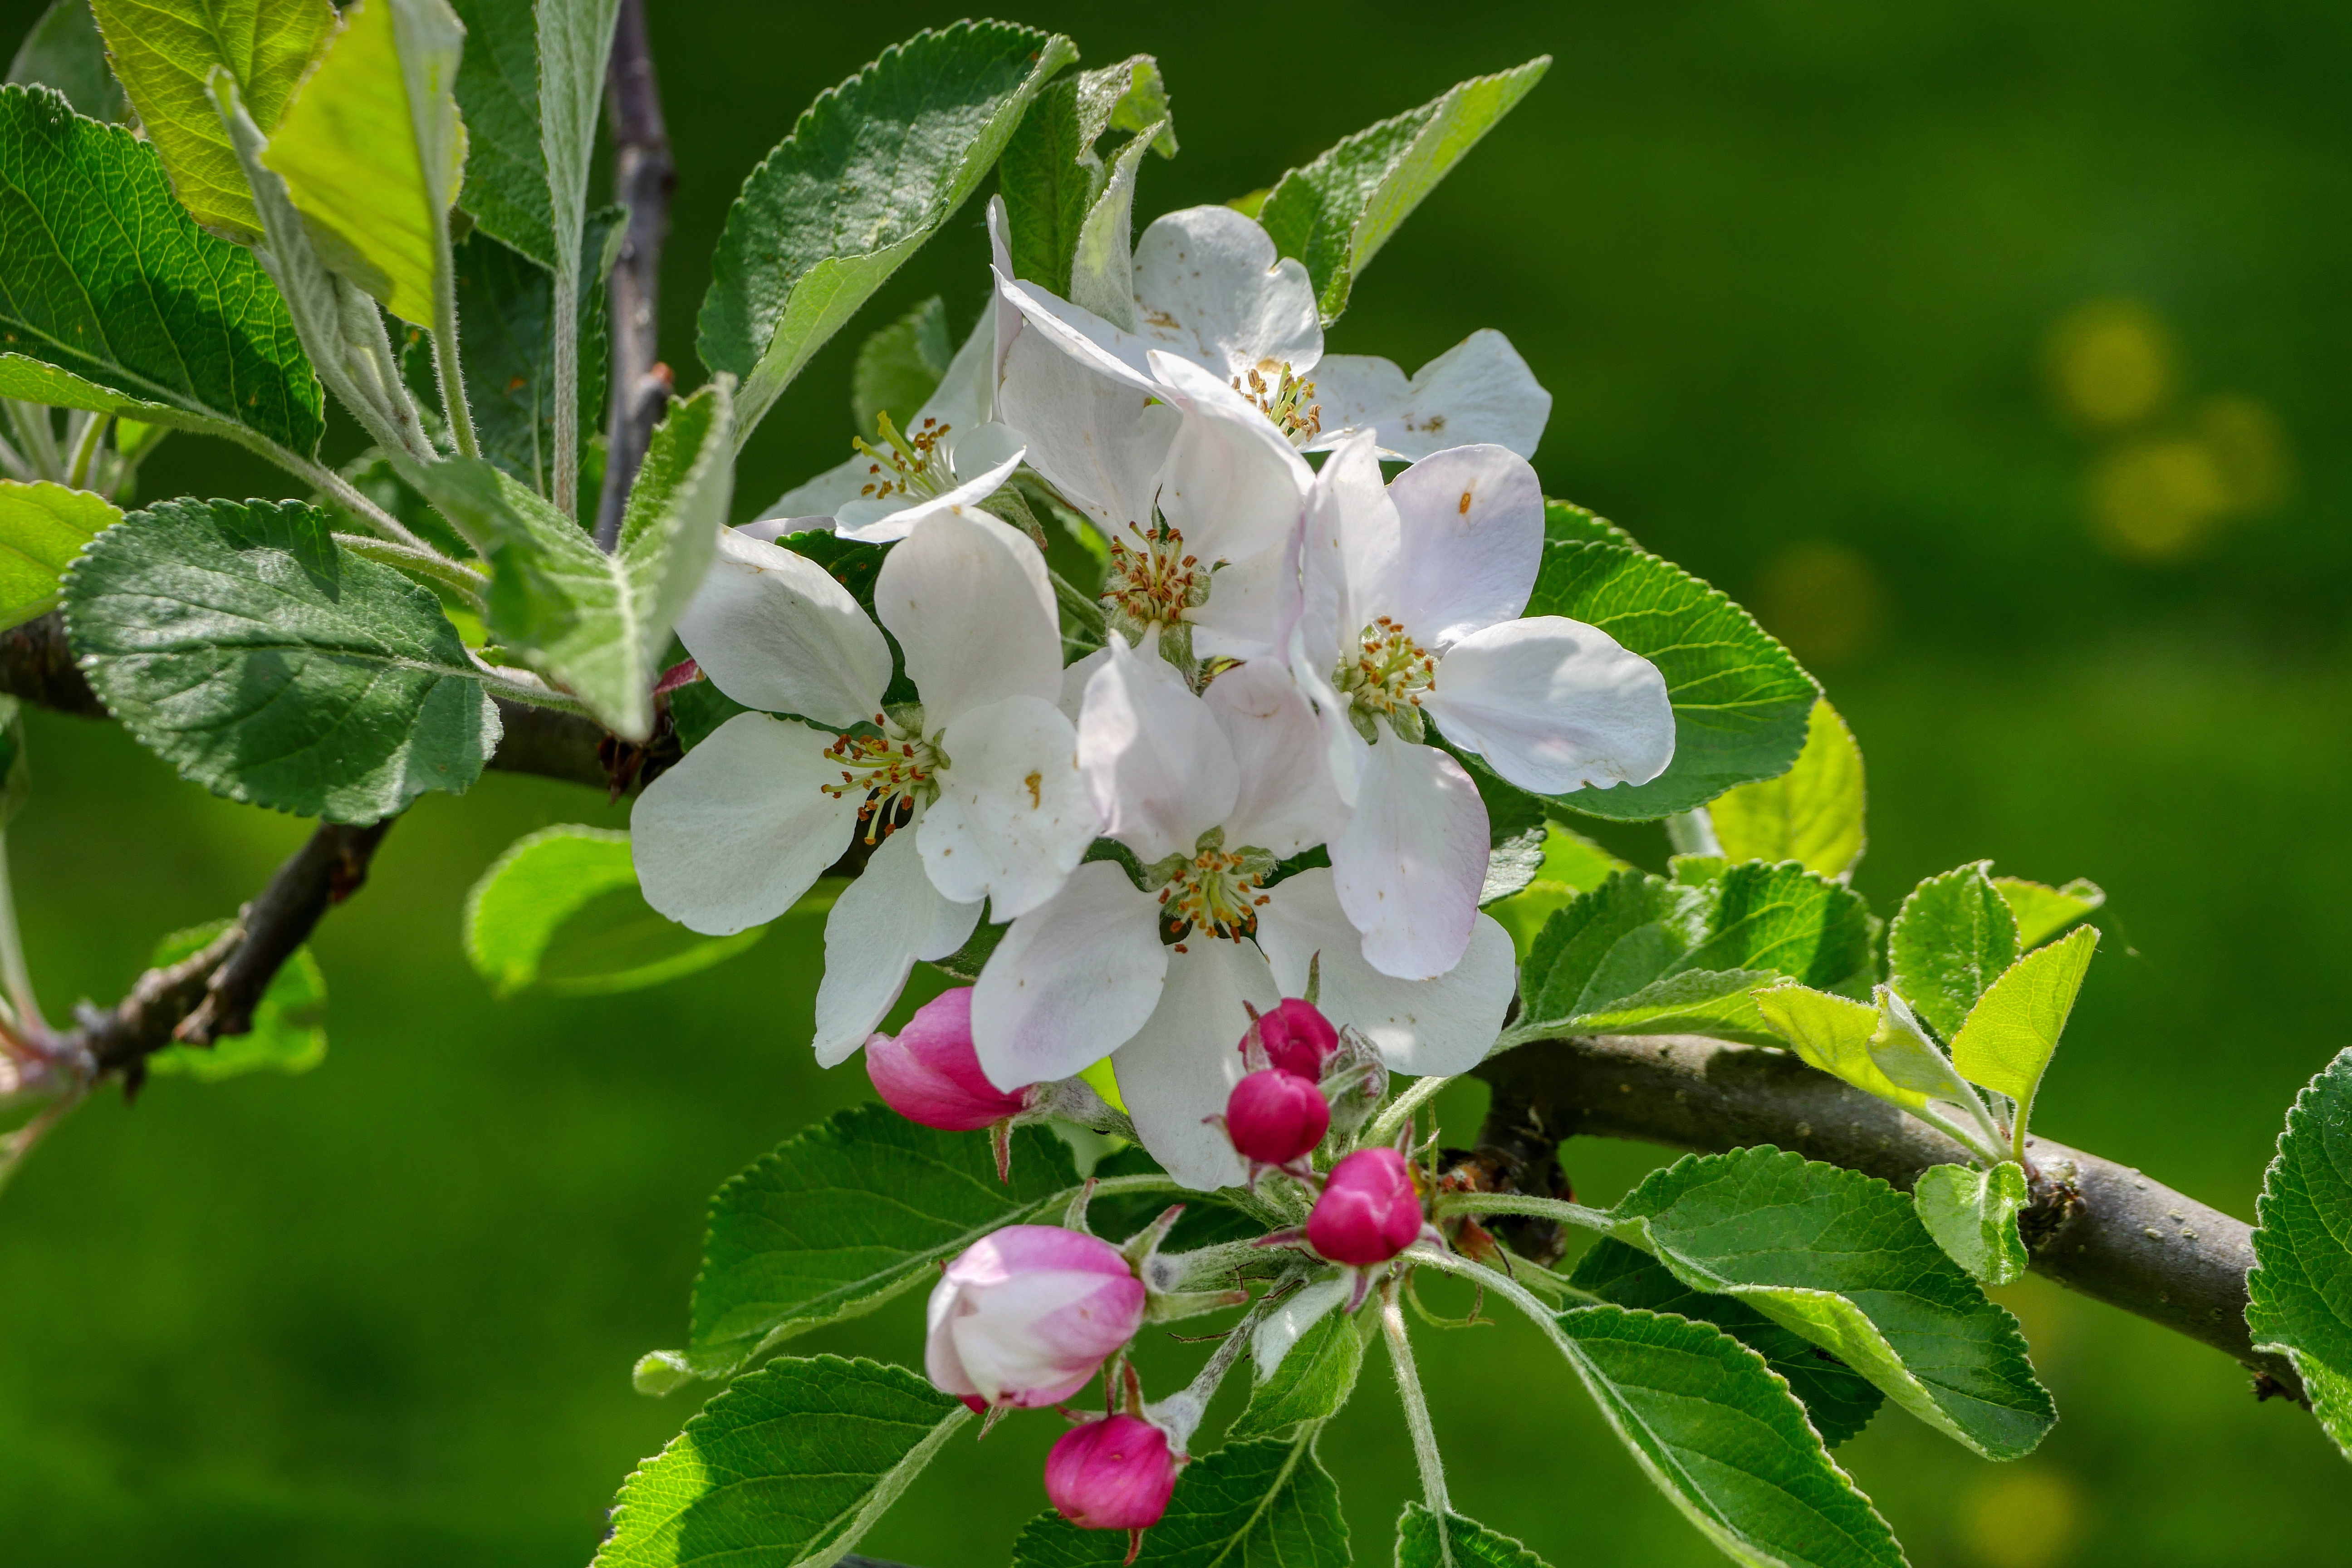 Image: Flowers, white, branch, leaves, green background